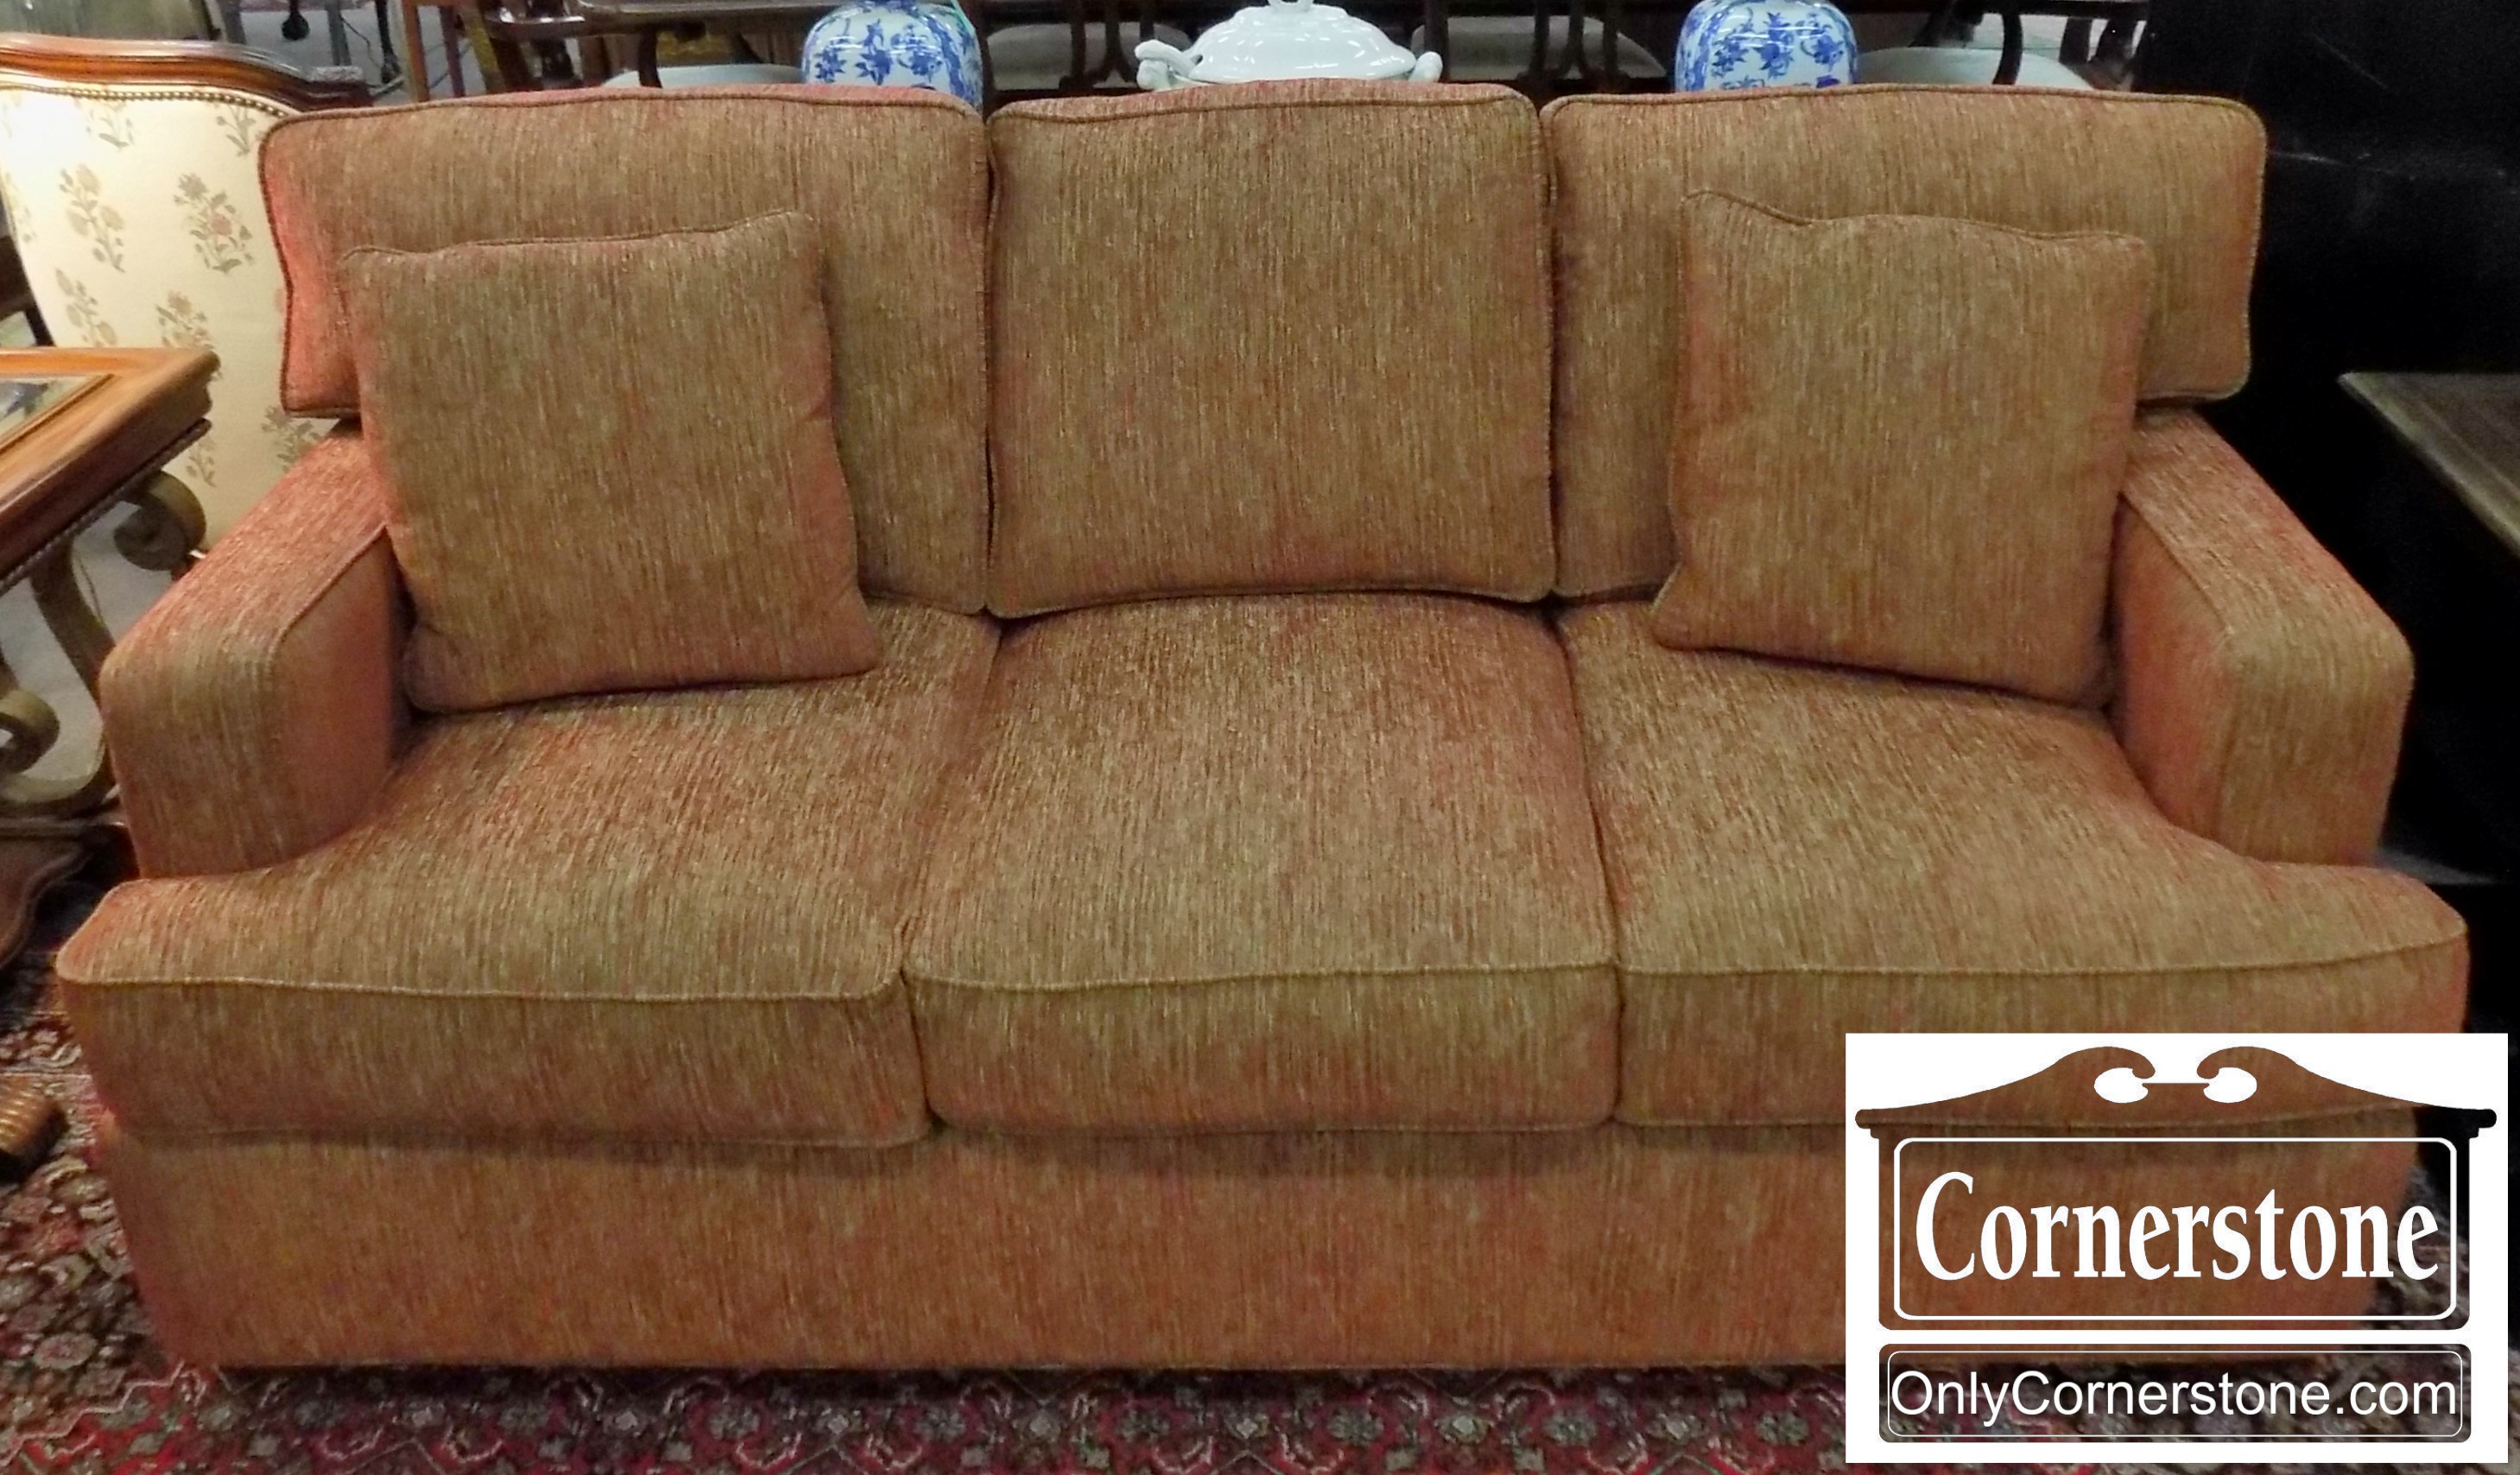 Fairfield Red Upholstered Sofa | Baltimore, Maryland Furniture Store U2013  Cornerstone